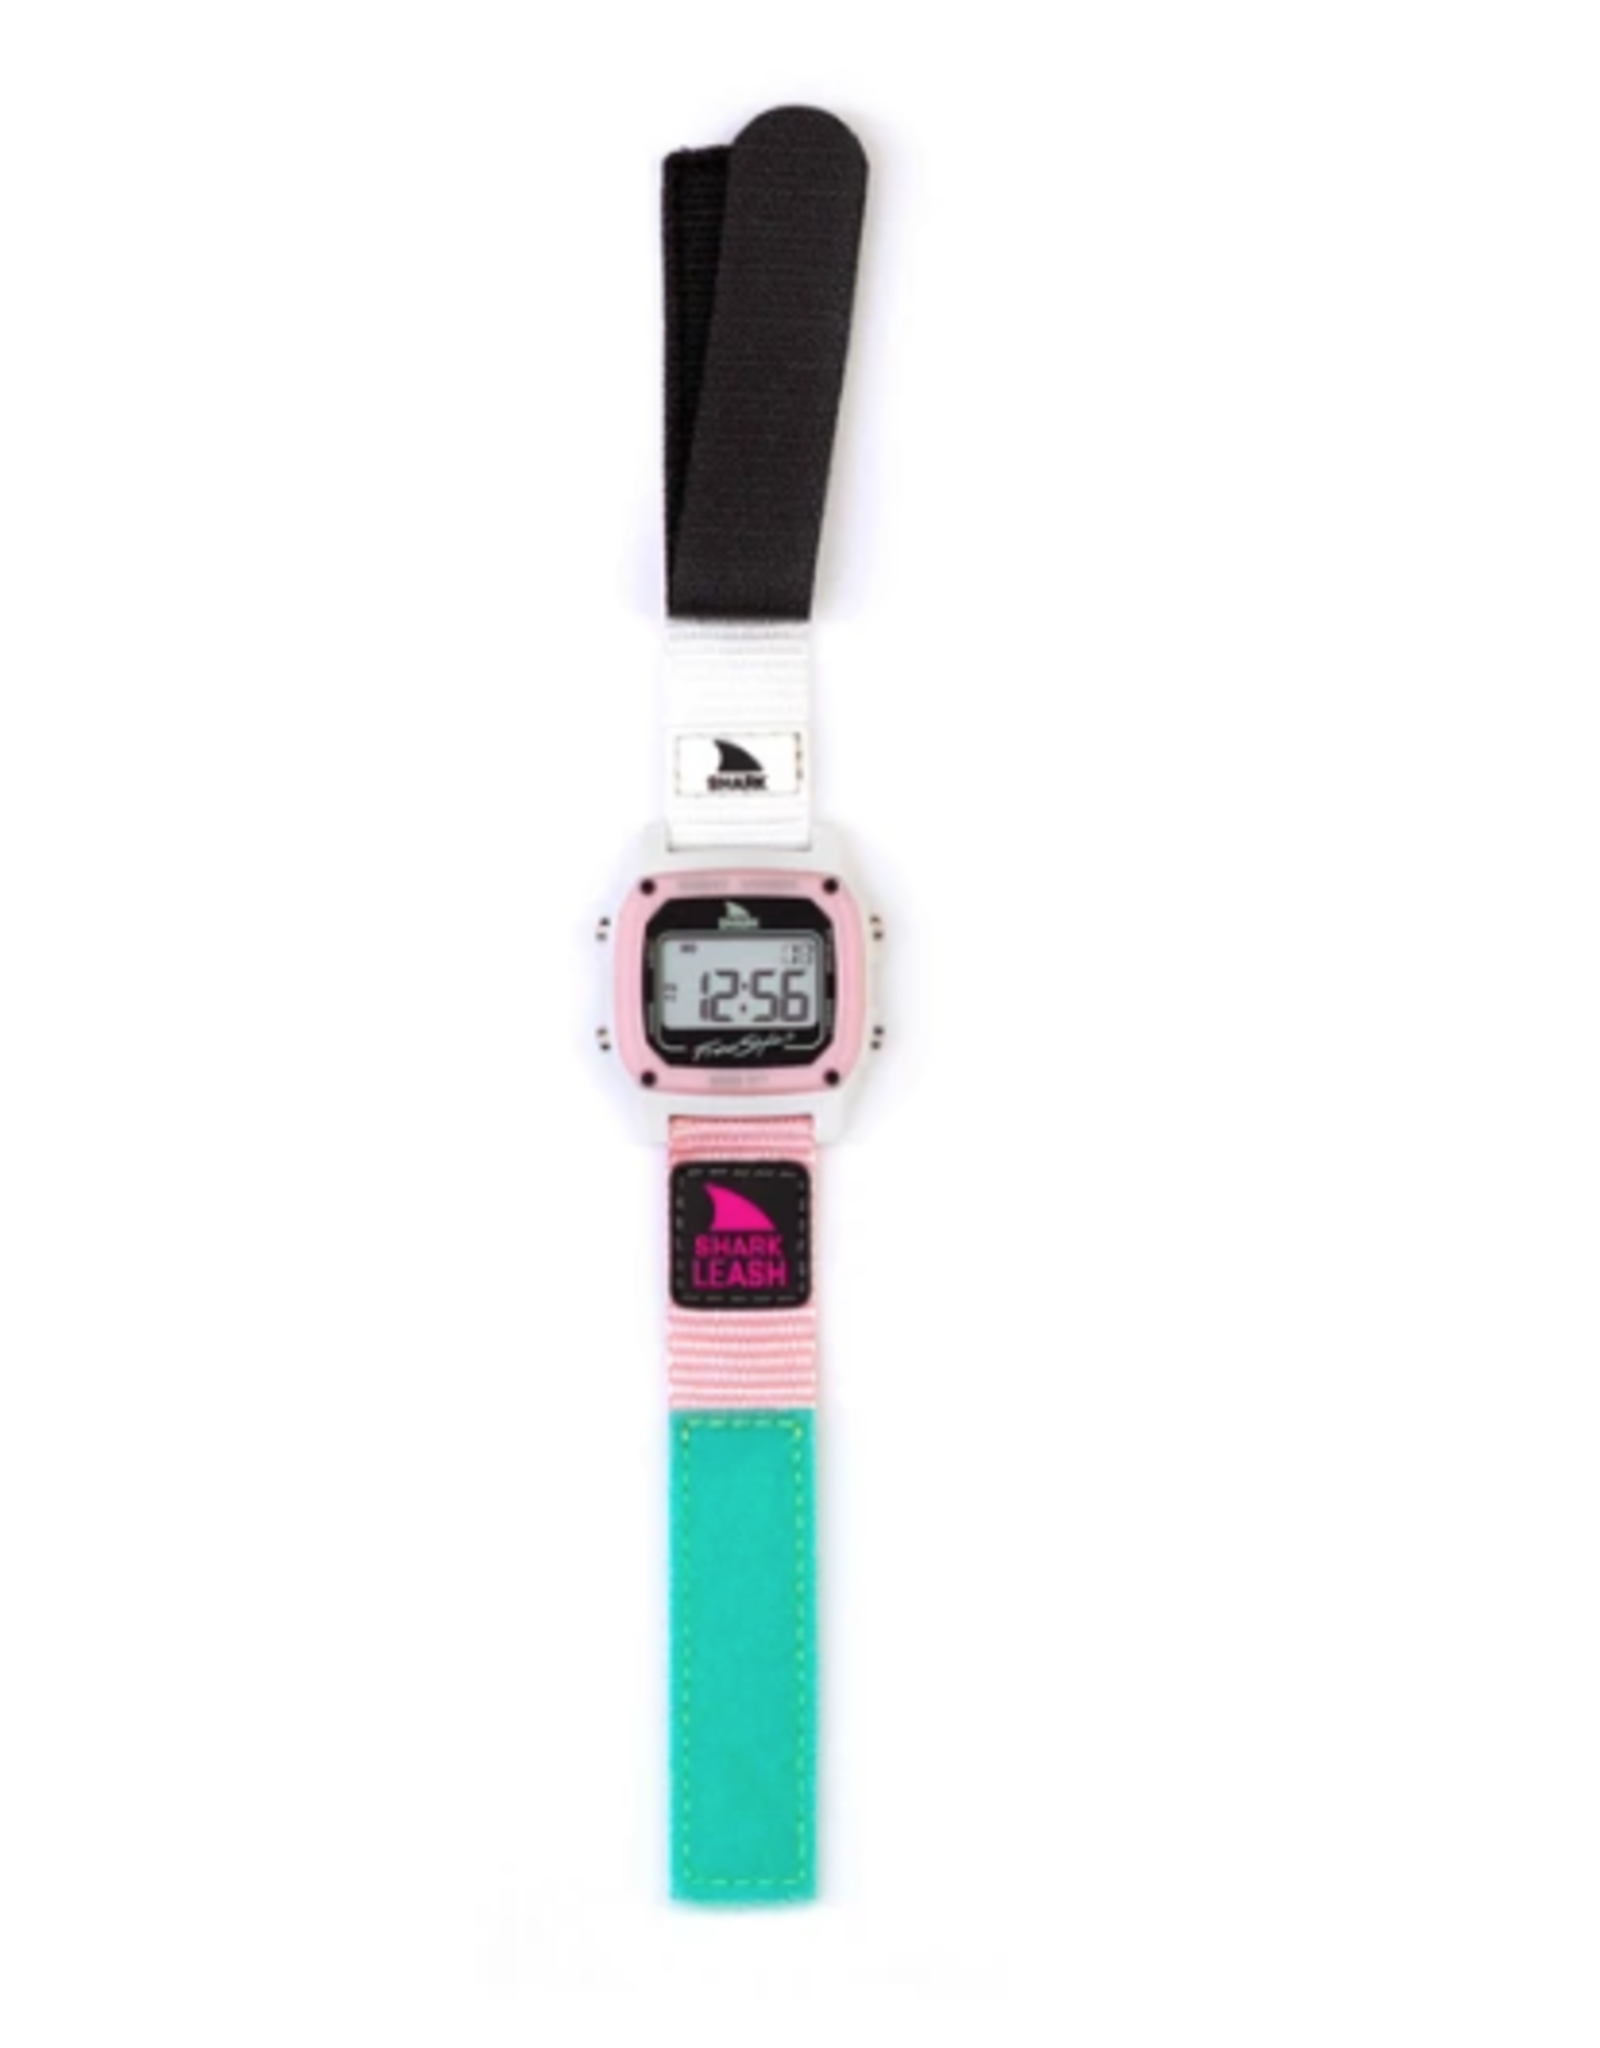 FREESTYLE FREESTYLE SHARK CLASSIC LEASH TAFFY WATCH